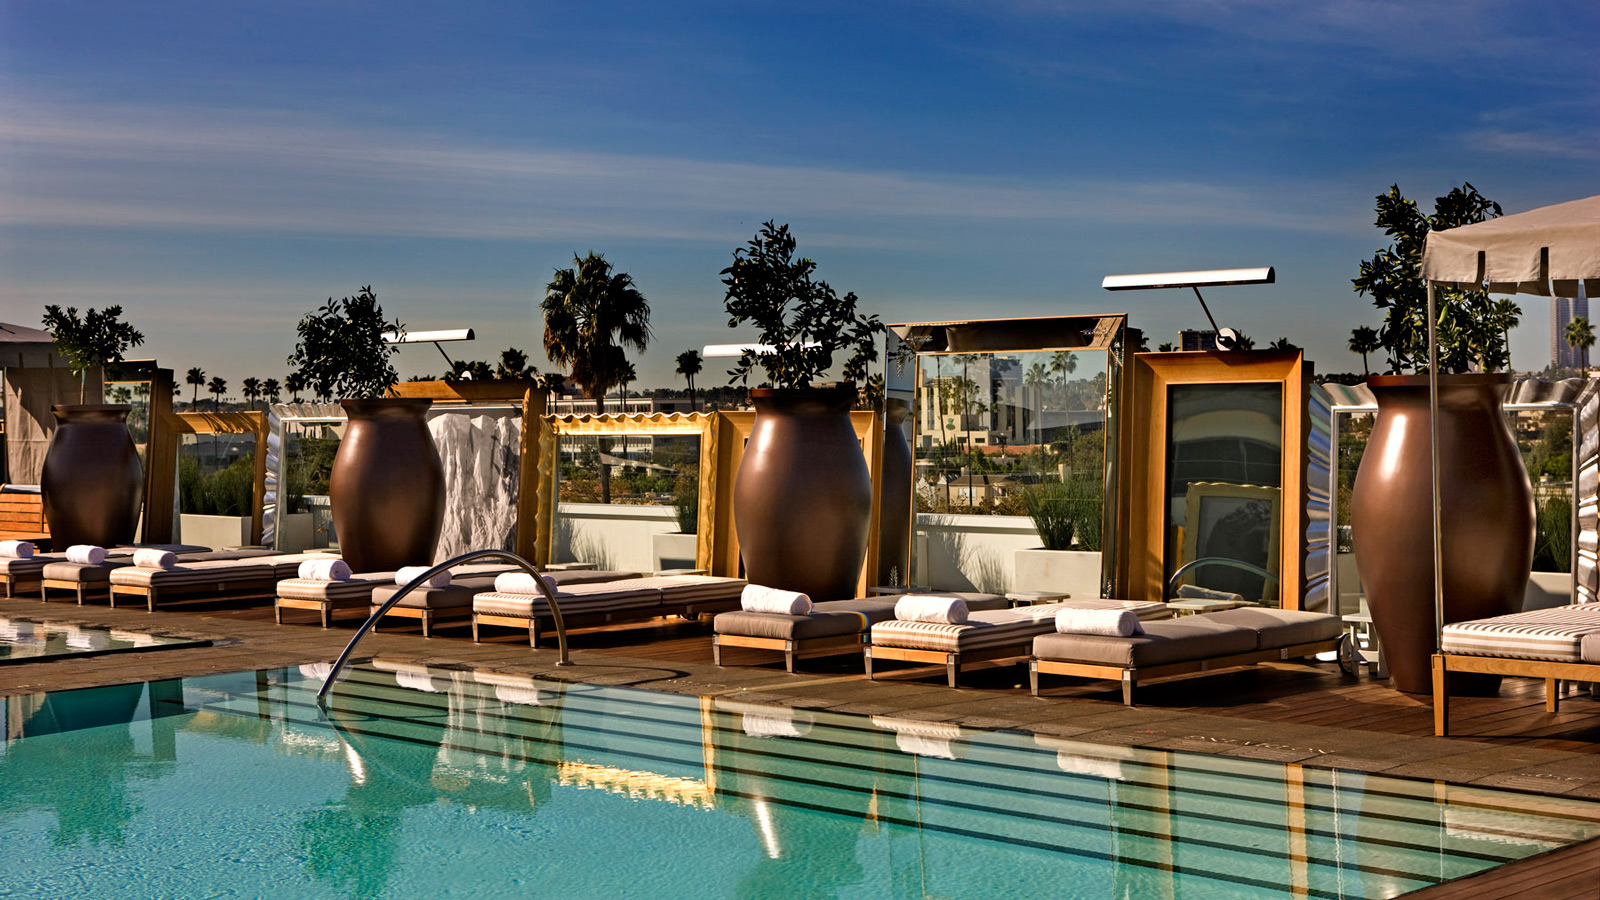 Los Angeles hotel pools: 6 that will make a real splash